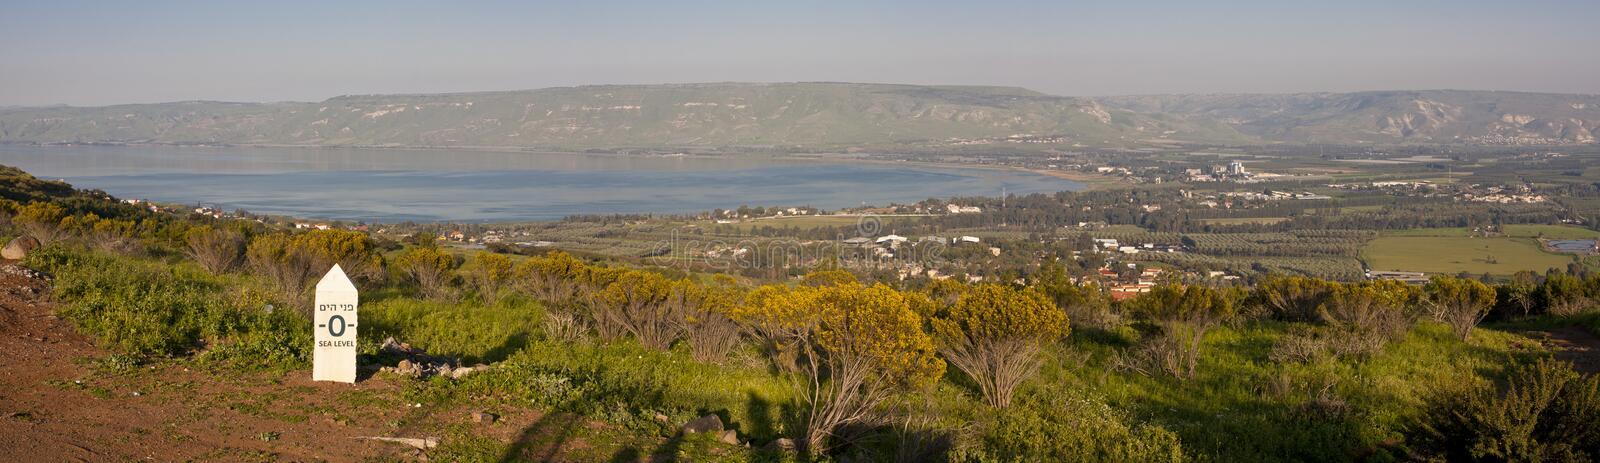 Sea of Galilee Panorama royalty free stock photography